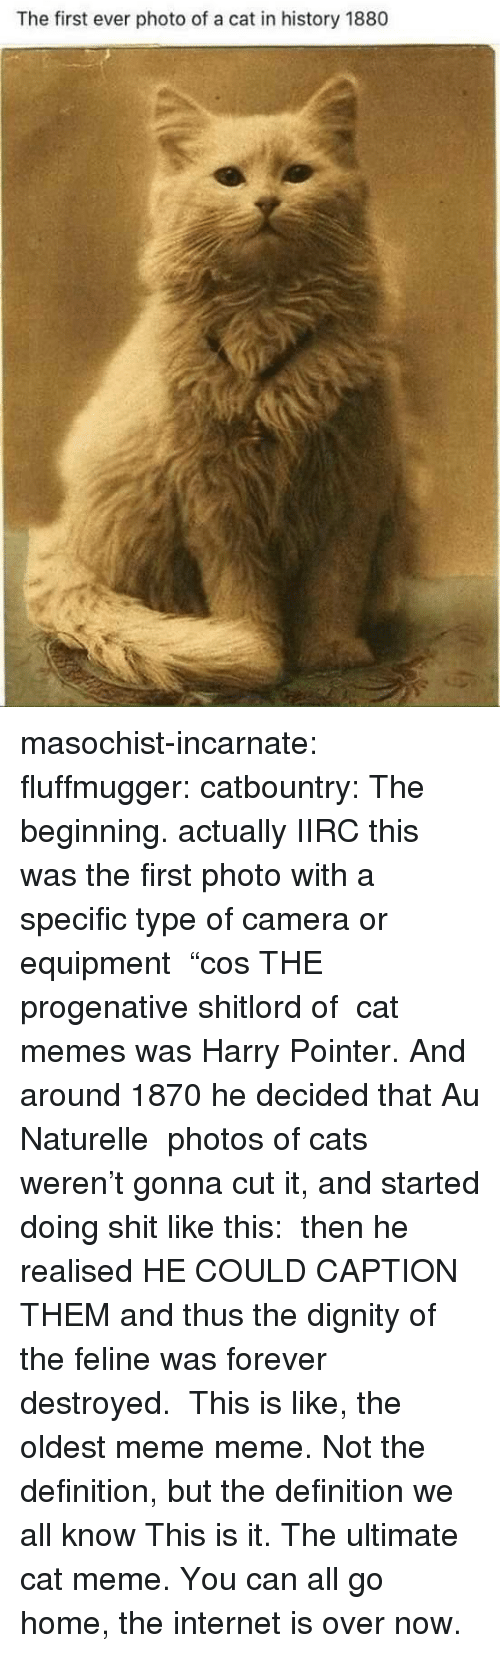 """Cats, Internet, and Meme: The first ever photo of a cat in history 1880 masochist-incarnate:  fluffmugger:  catbountry: The beginning. actually IIRC this was the first photo with a specific type of camera or equipment """"cos THE progenative shitlord of cat memes was Harry Pointer. And around 1870 he decided that Au Naturelle photos of cats weren't gonna cut it, and started doing shit like this: then he realised HE COULD CAPTION THEM and thus the dignity of the feline was forever destroyed.   This is like, the oldest meme meme. Not the definition, but the definition we all know   This is it. The ultimate cat meme. You can all go home, the internet is over now."""